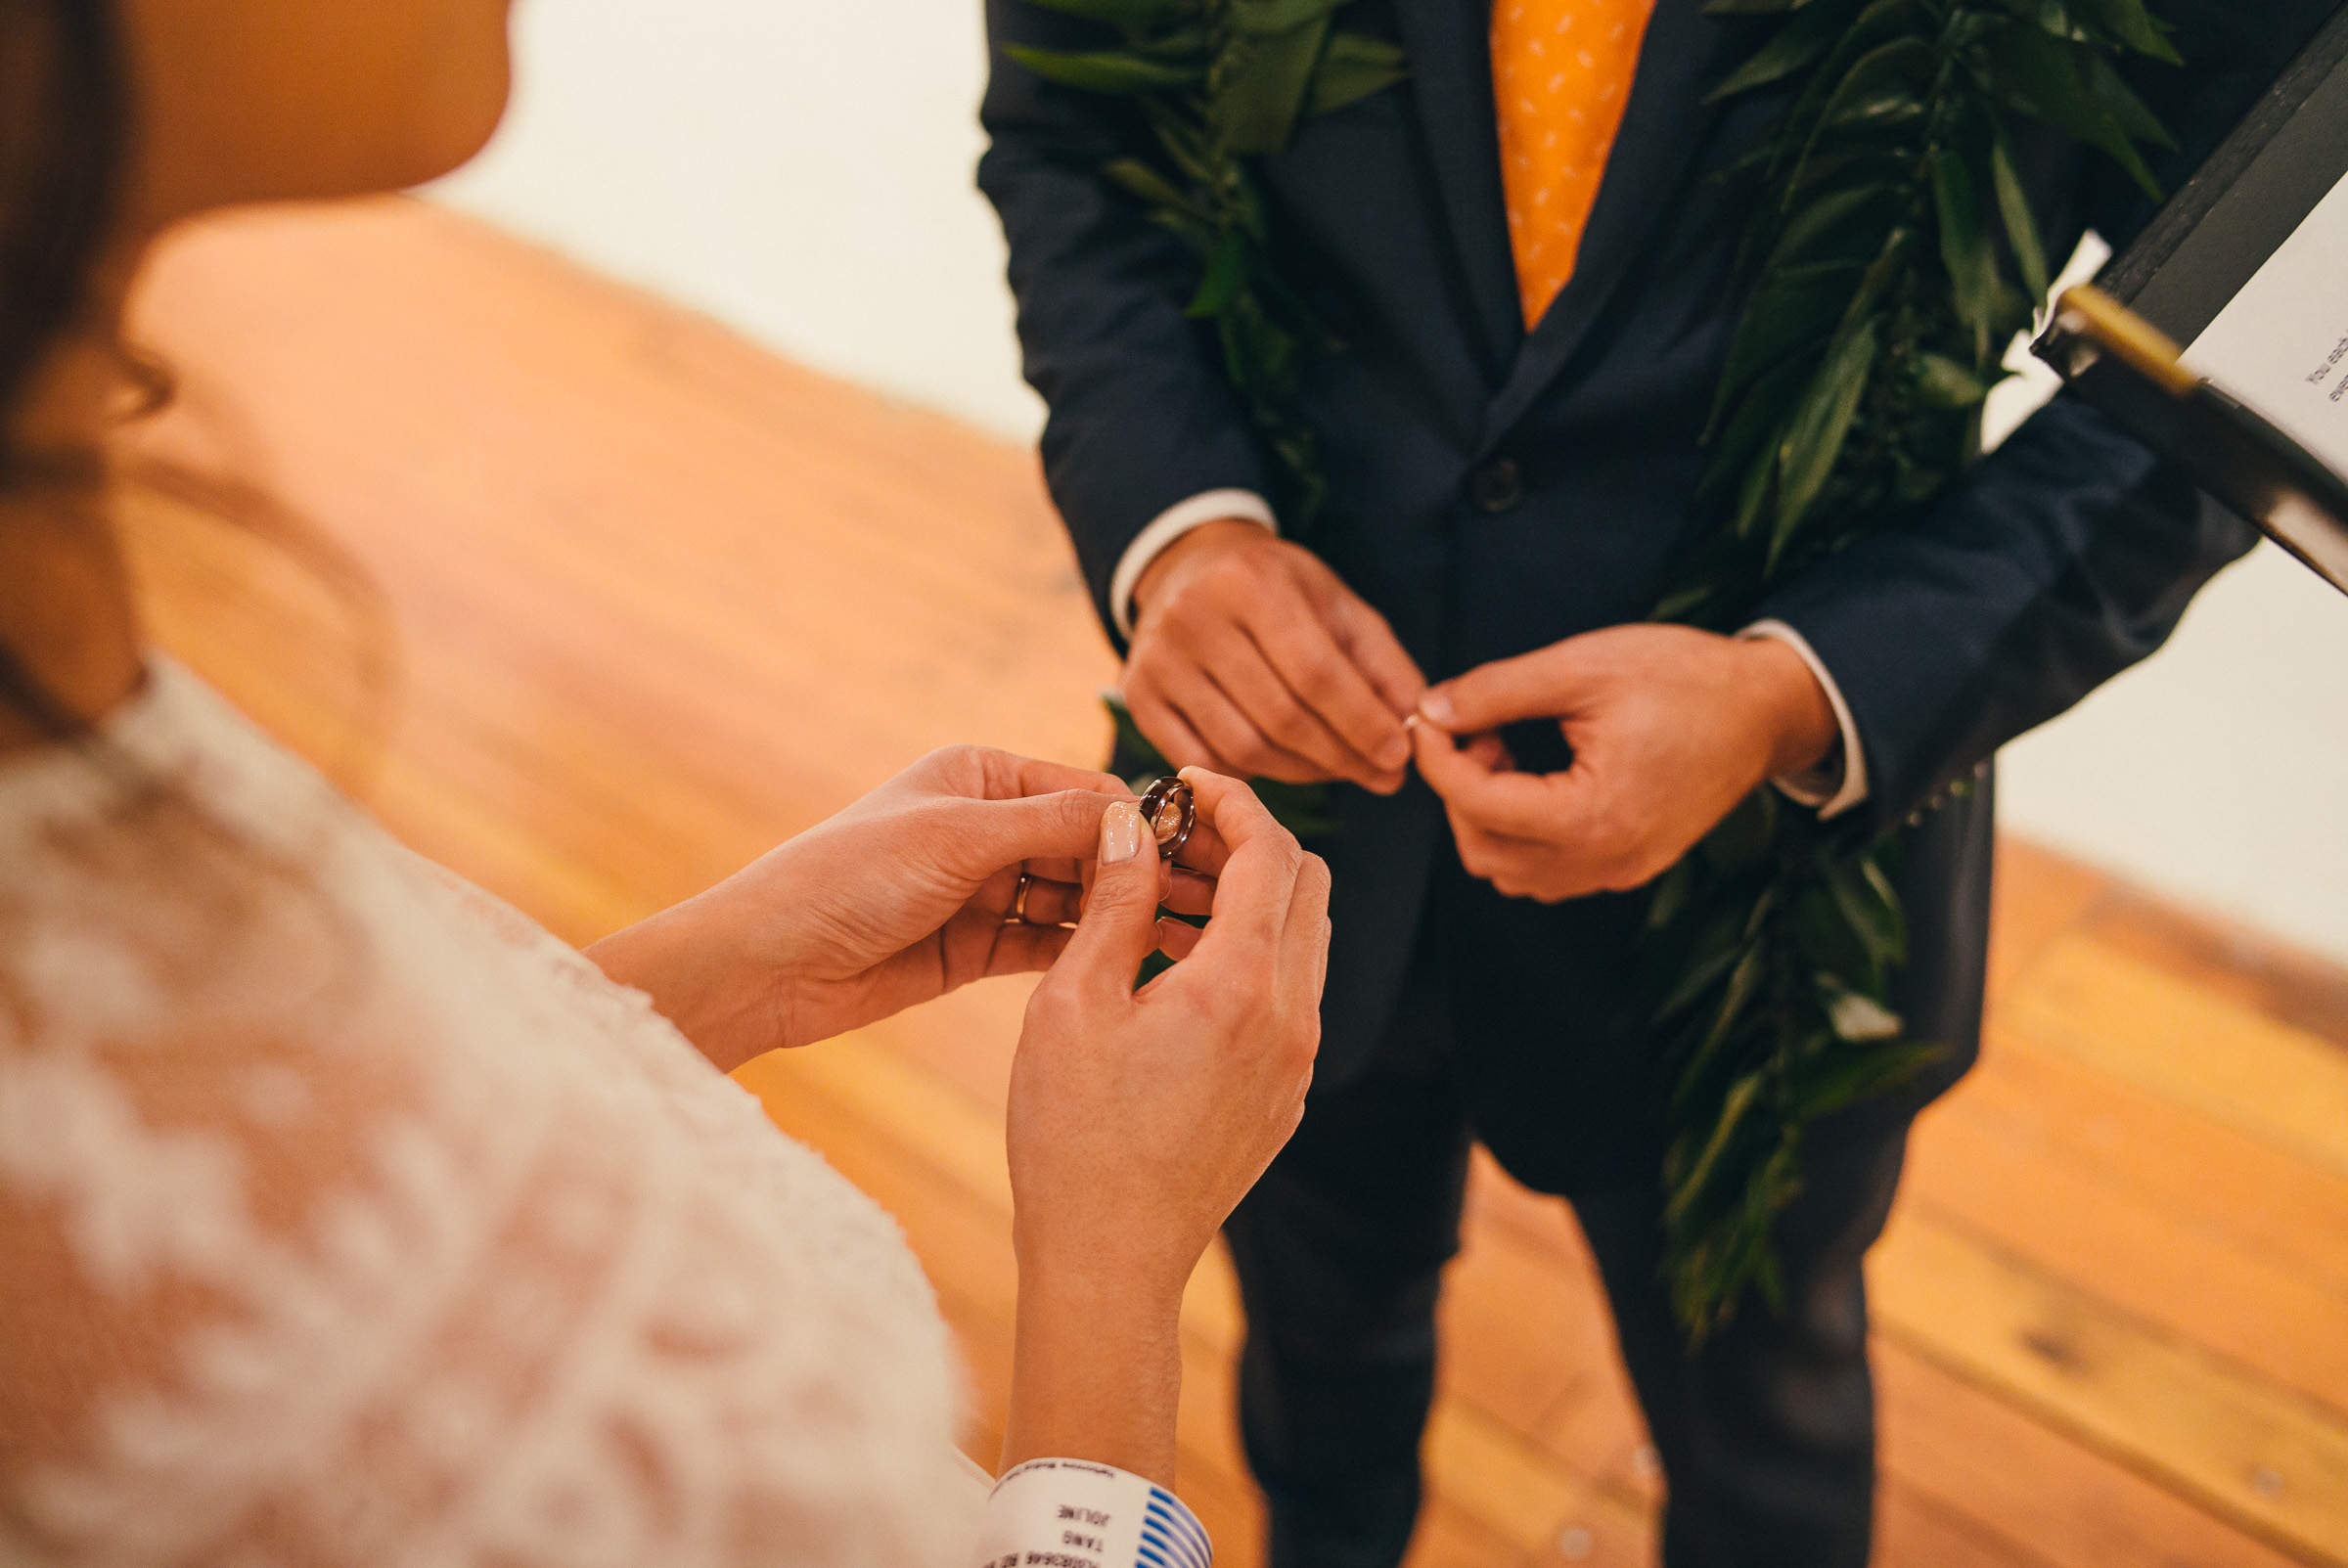 Bridge and Groom Exchanging Rings During Wedding Ceremony in Pioneer Square in Seattle, WA